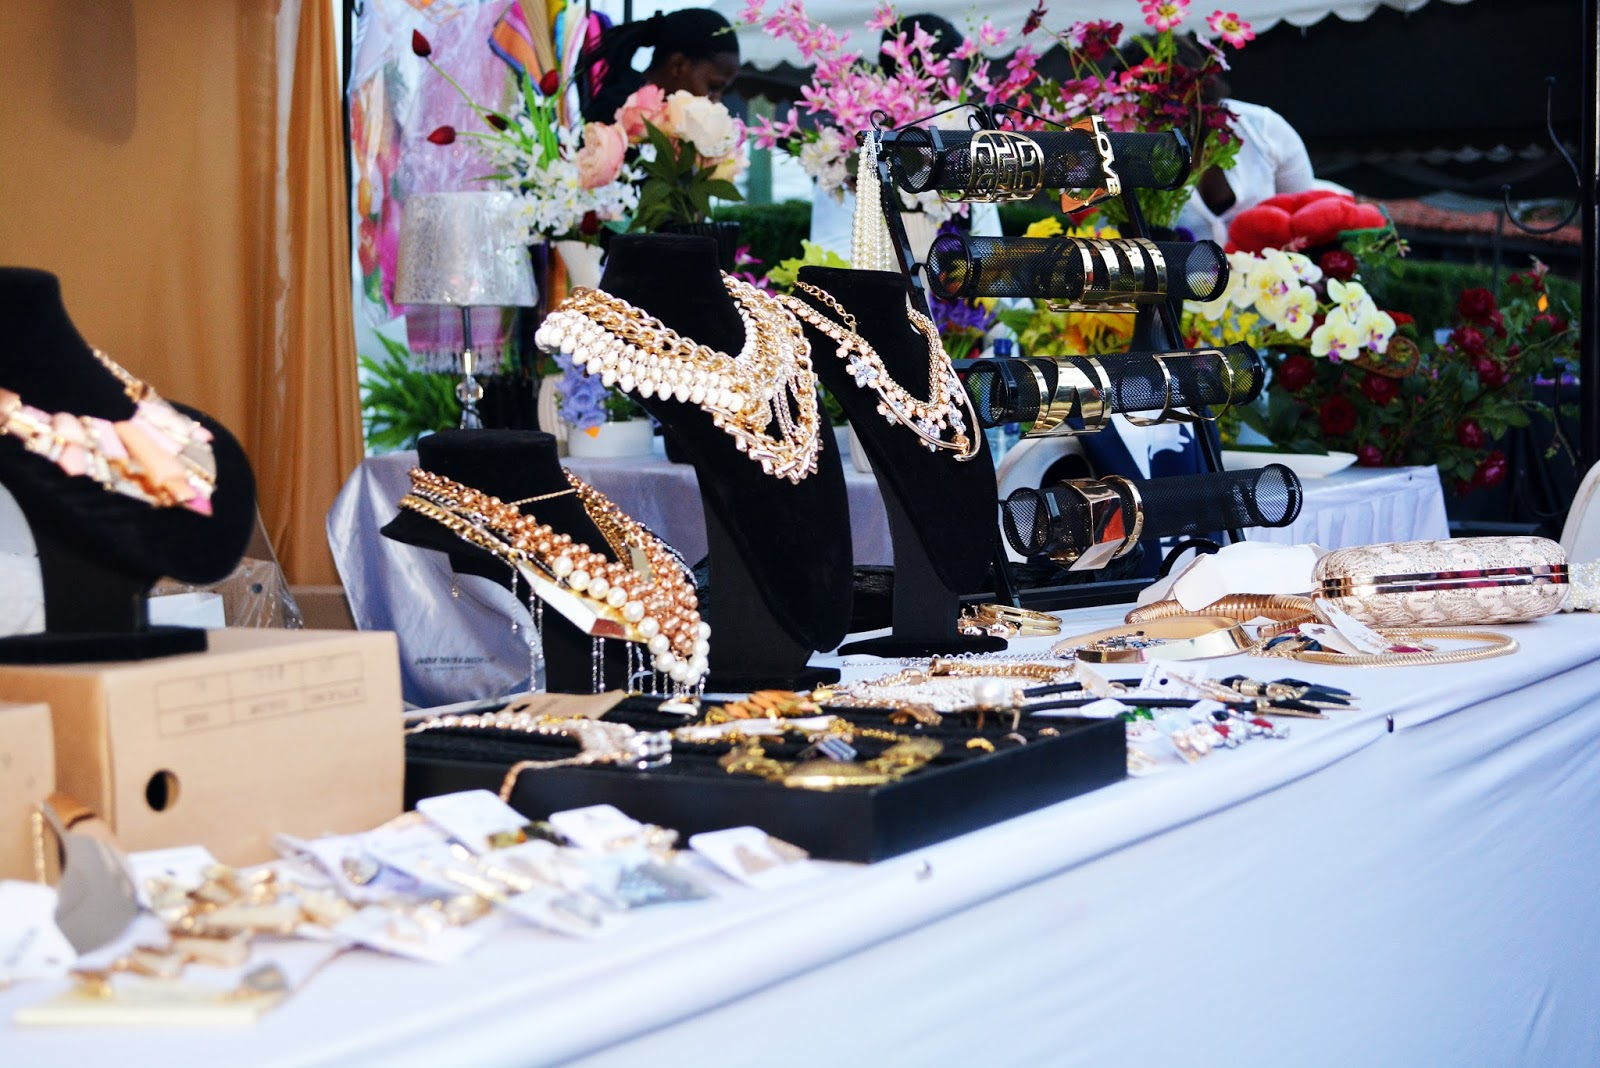 Nairobi Fashion Market, Nairobi Fashion, Kenyan fashion, Style with Ezil, Fashion events in kenya, Ezil, Reviews by Ezil, African fashion Blogger, Kenyan fashion blogger.